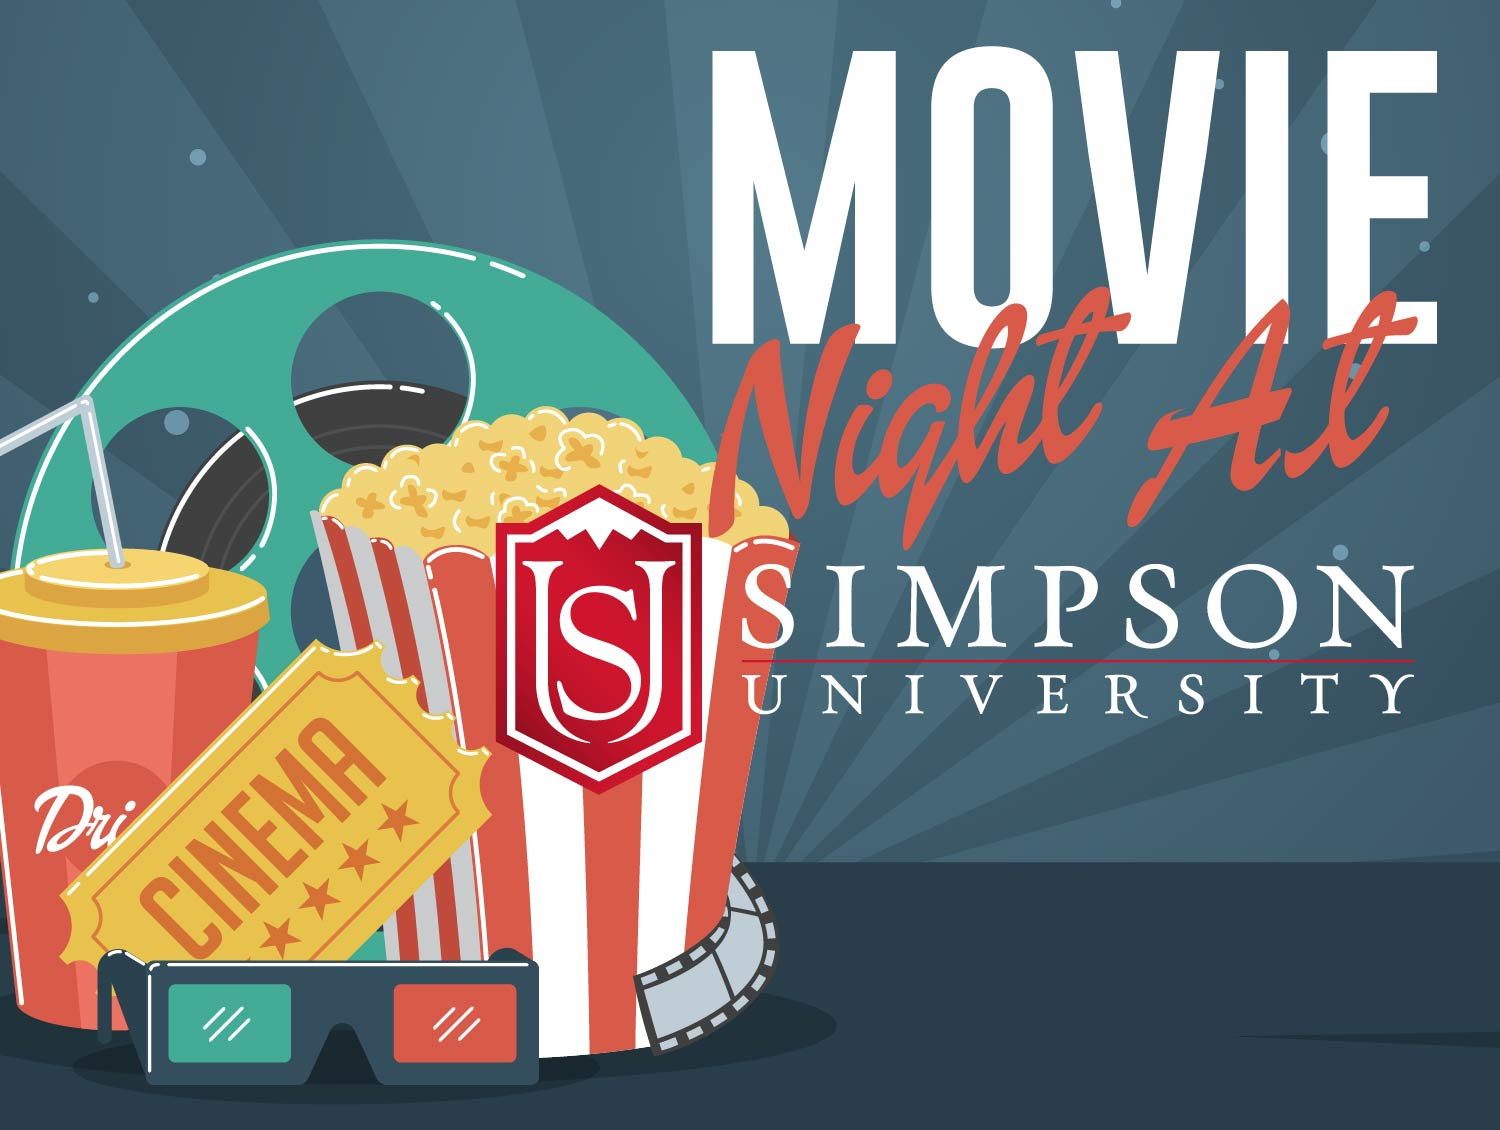 Simpson University Moive Night Visit Event